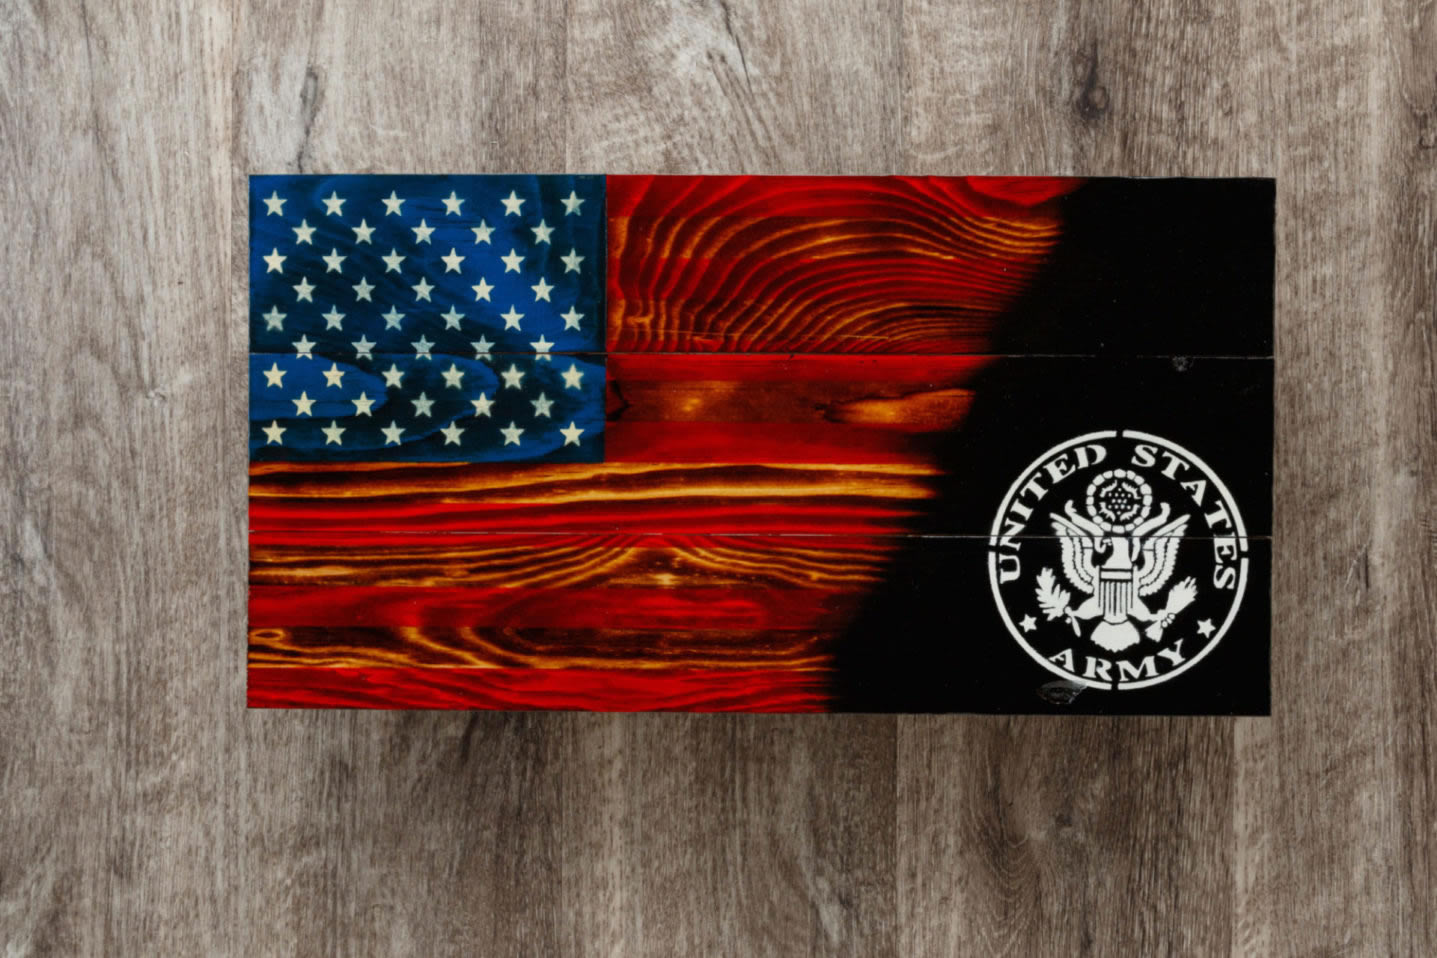 Wooden army flag torched